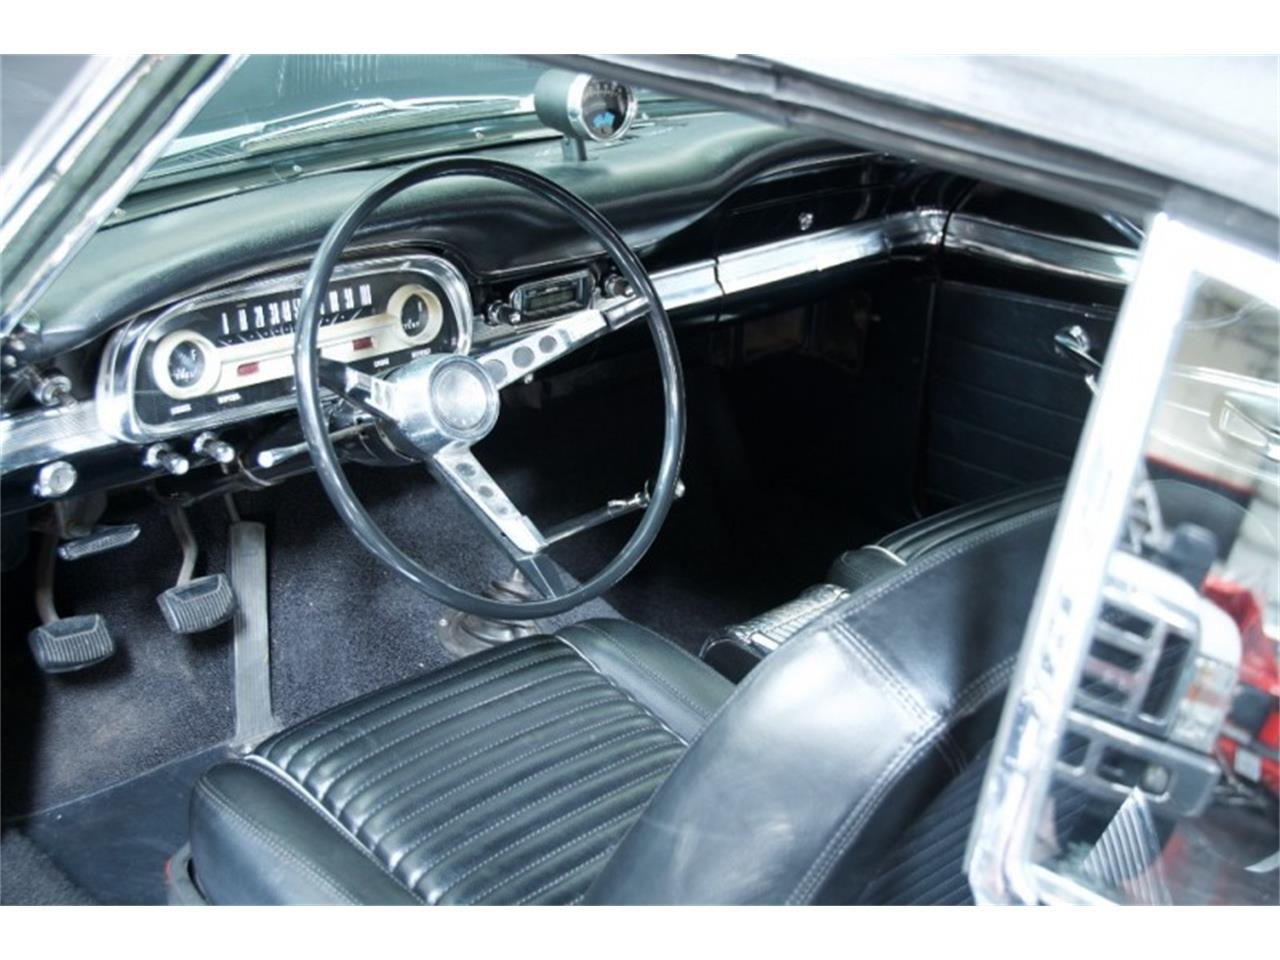 1963 Ford Falcon for sale in Milpitas, CA – photo 48